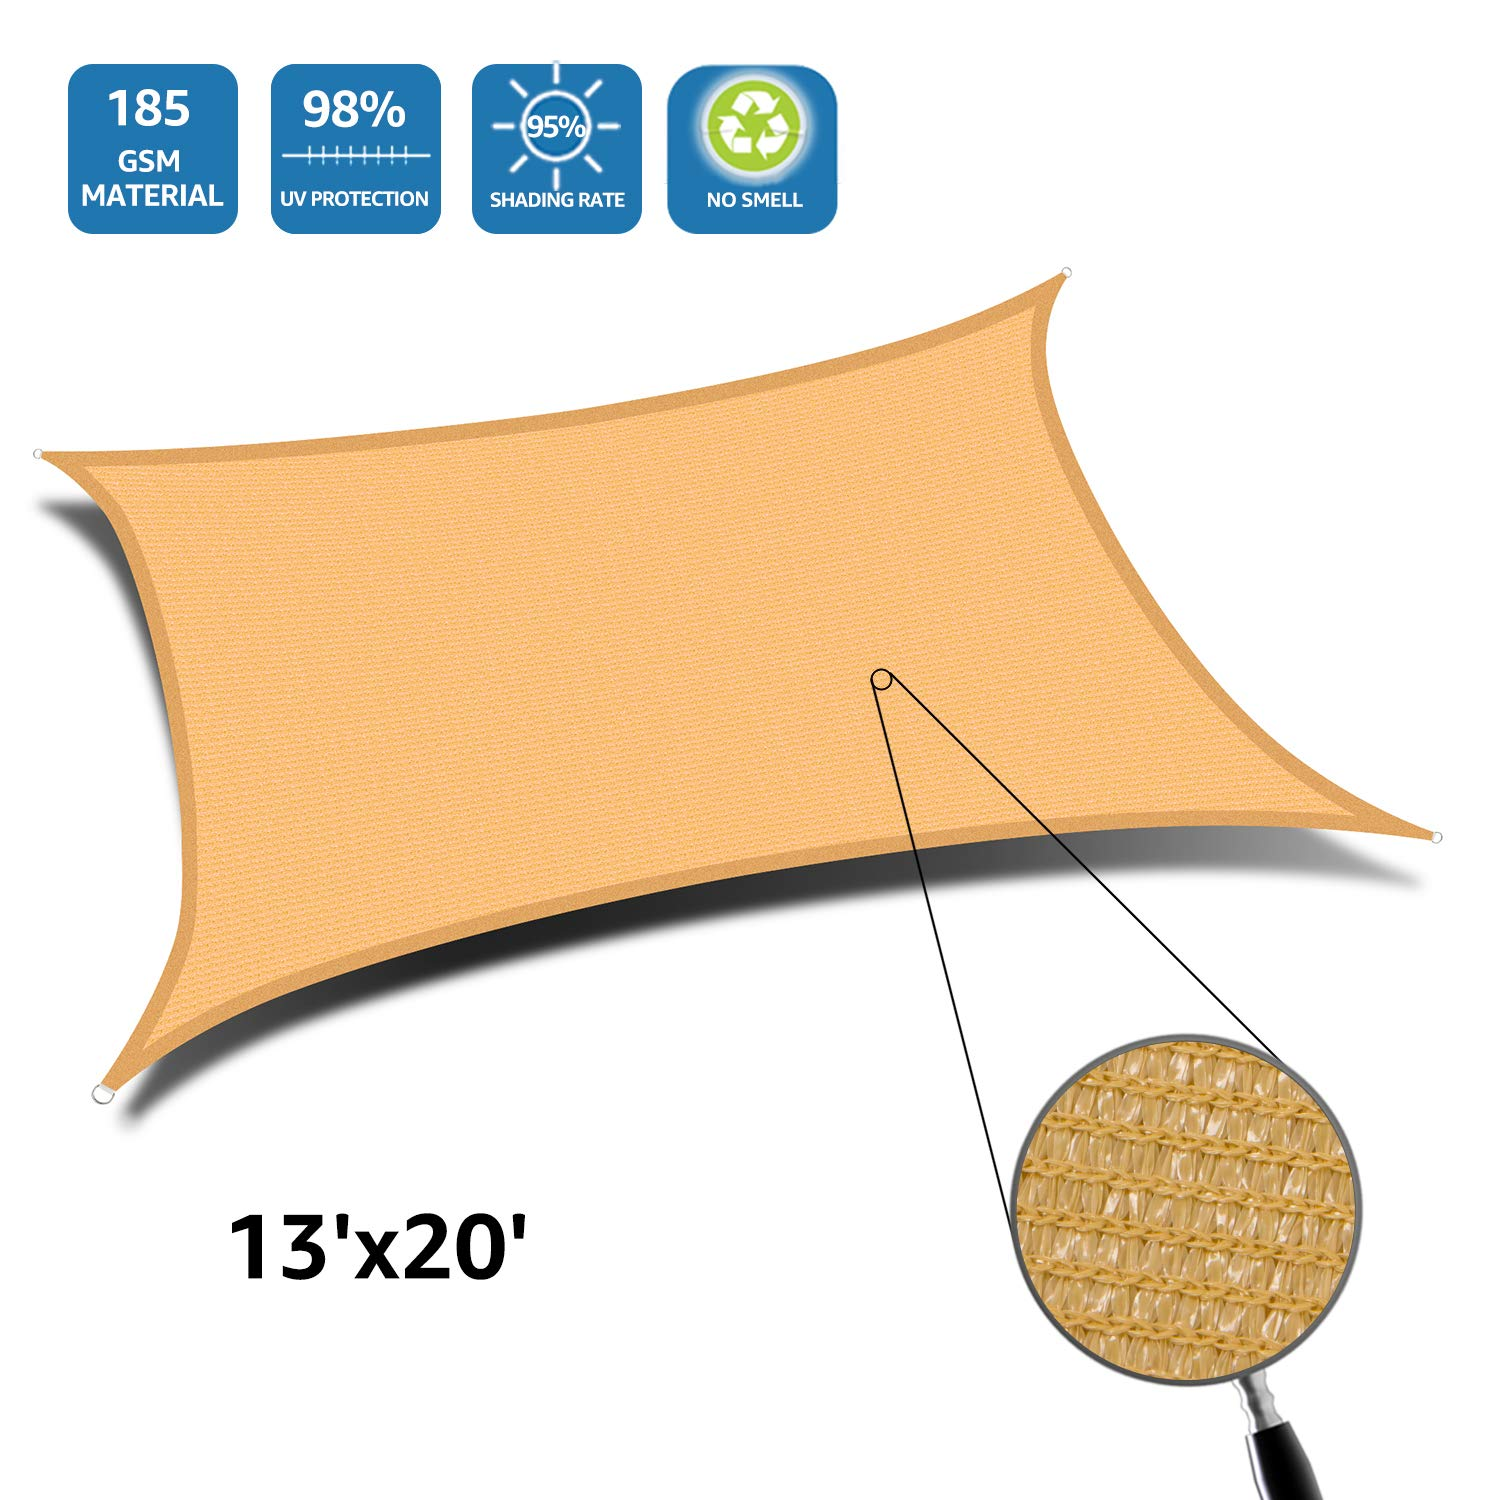 DOEWORKS Rectangle 13' X 20' Sun Shade Sail, UV Block for Outdoor Patio Garden Facility and Activities, Sand by DOEWORKS